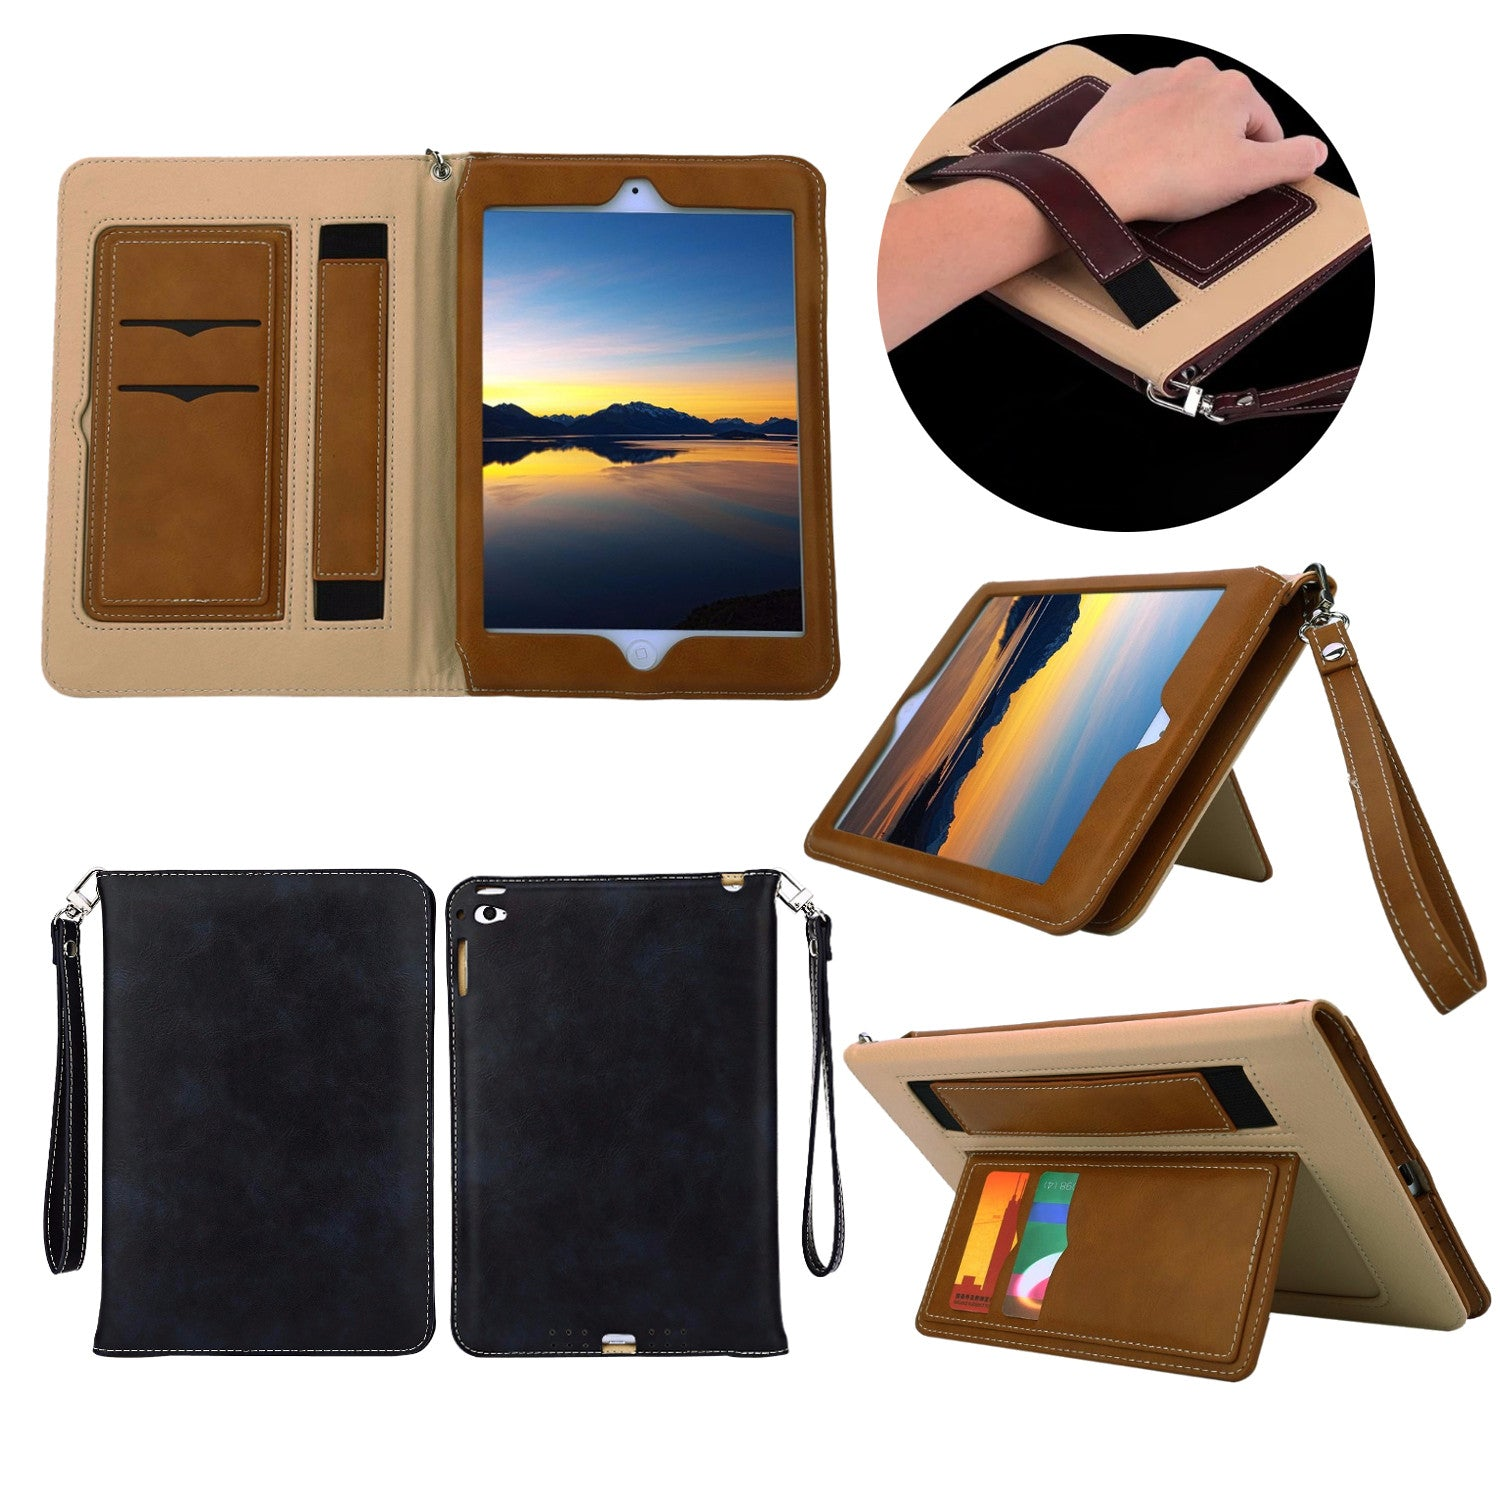 Multifunction Lanyard Card Slot Stand Holder Leather Case For iPad Mini 1 2 3